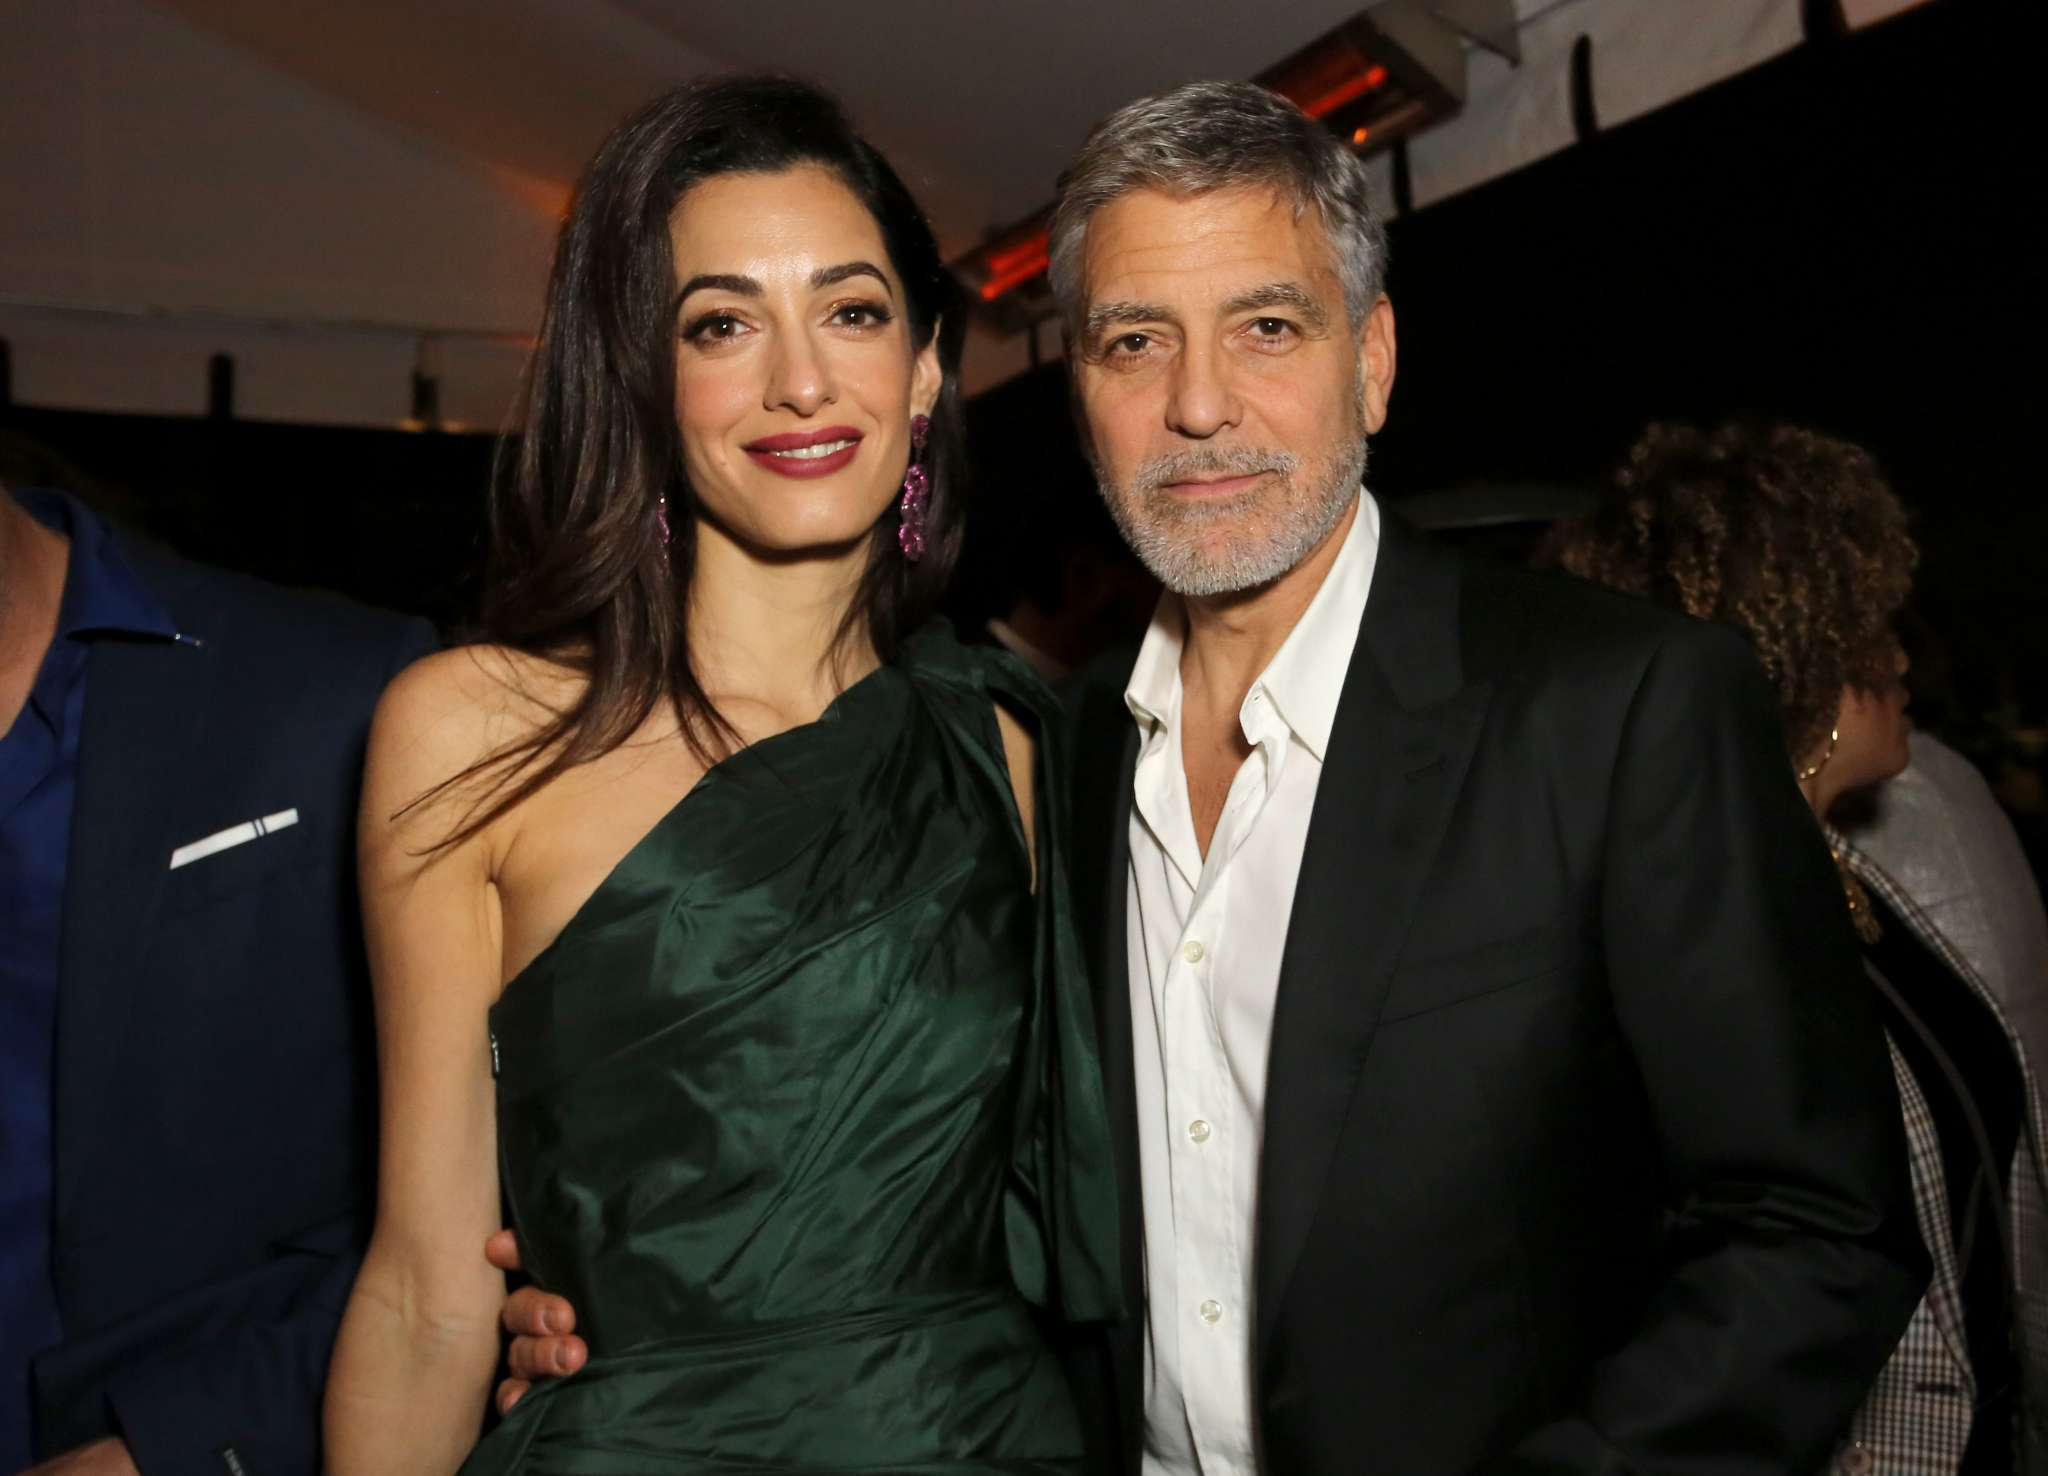 George Clooney Explains How Meeting Wife Amal Clooney Changed His 'Incredibly Empty' Life!